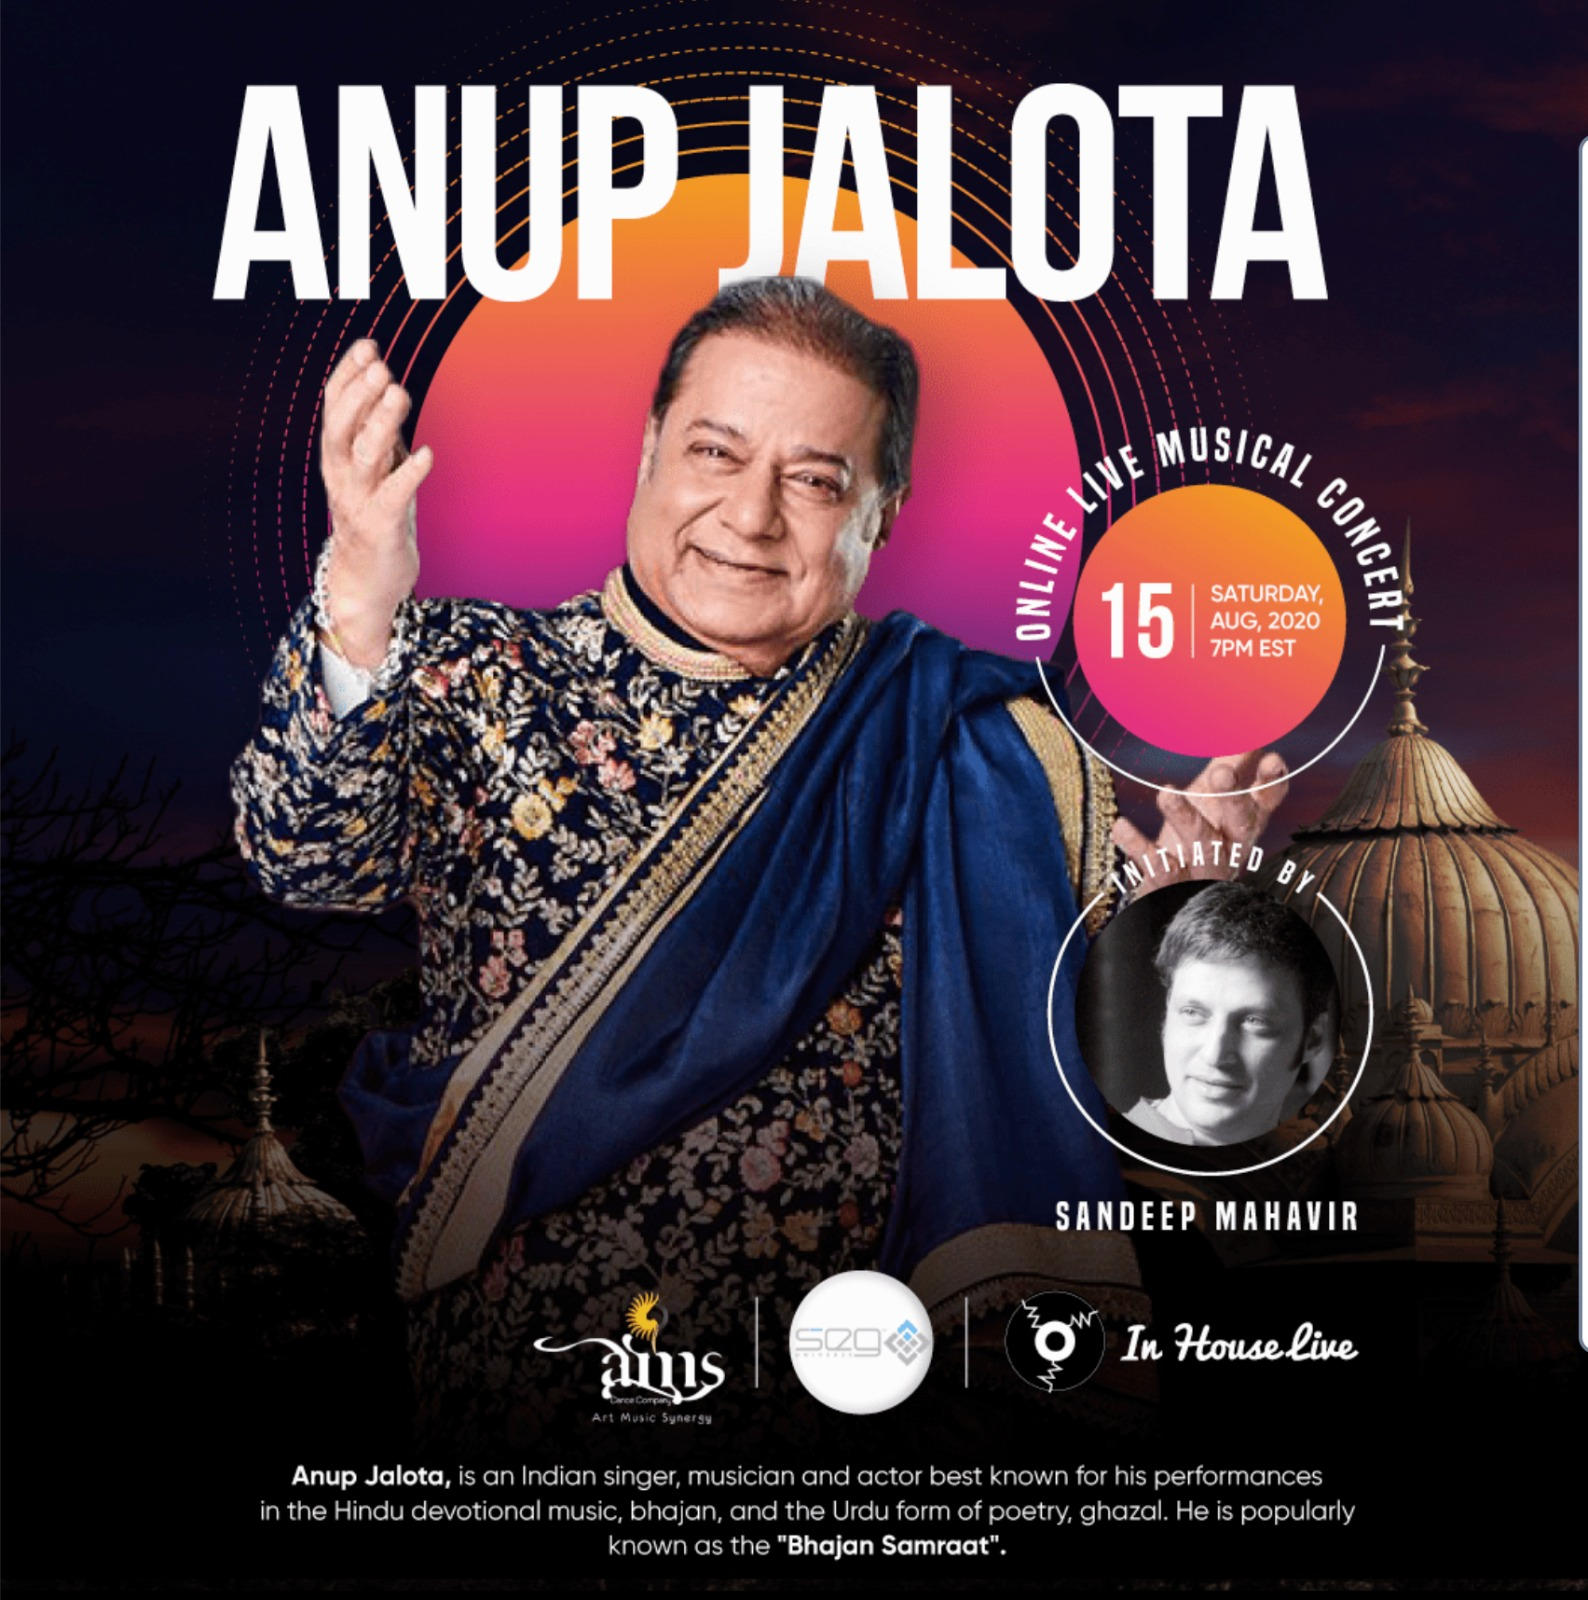 get-immersed-in-the-fervour-of-independence-day-with-the-magic-of-anup-jalota